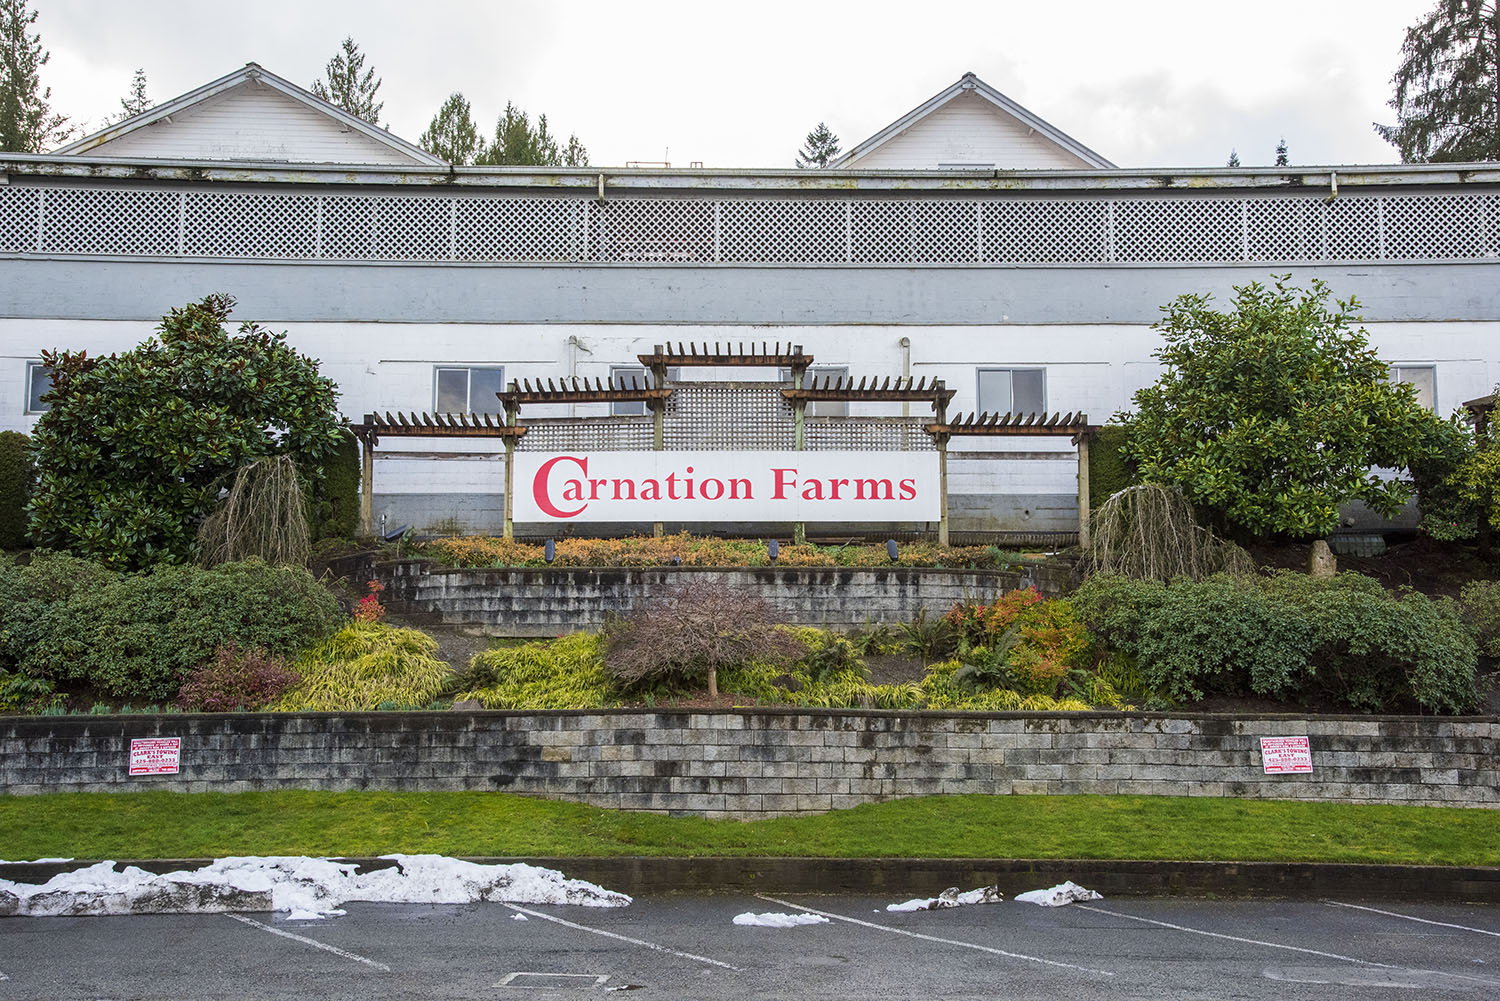 Looking to grow dairy production at Carnation Farms, E.A. set out to increase his herd numbers by creating a super selective breeding program of Holstein cattle. Biology aside, he also outlined one main goal for working with cattle: ensure each cow is happy. (Rachael Jones / Seattle Refined)